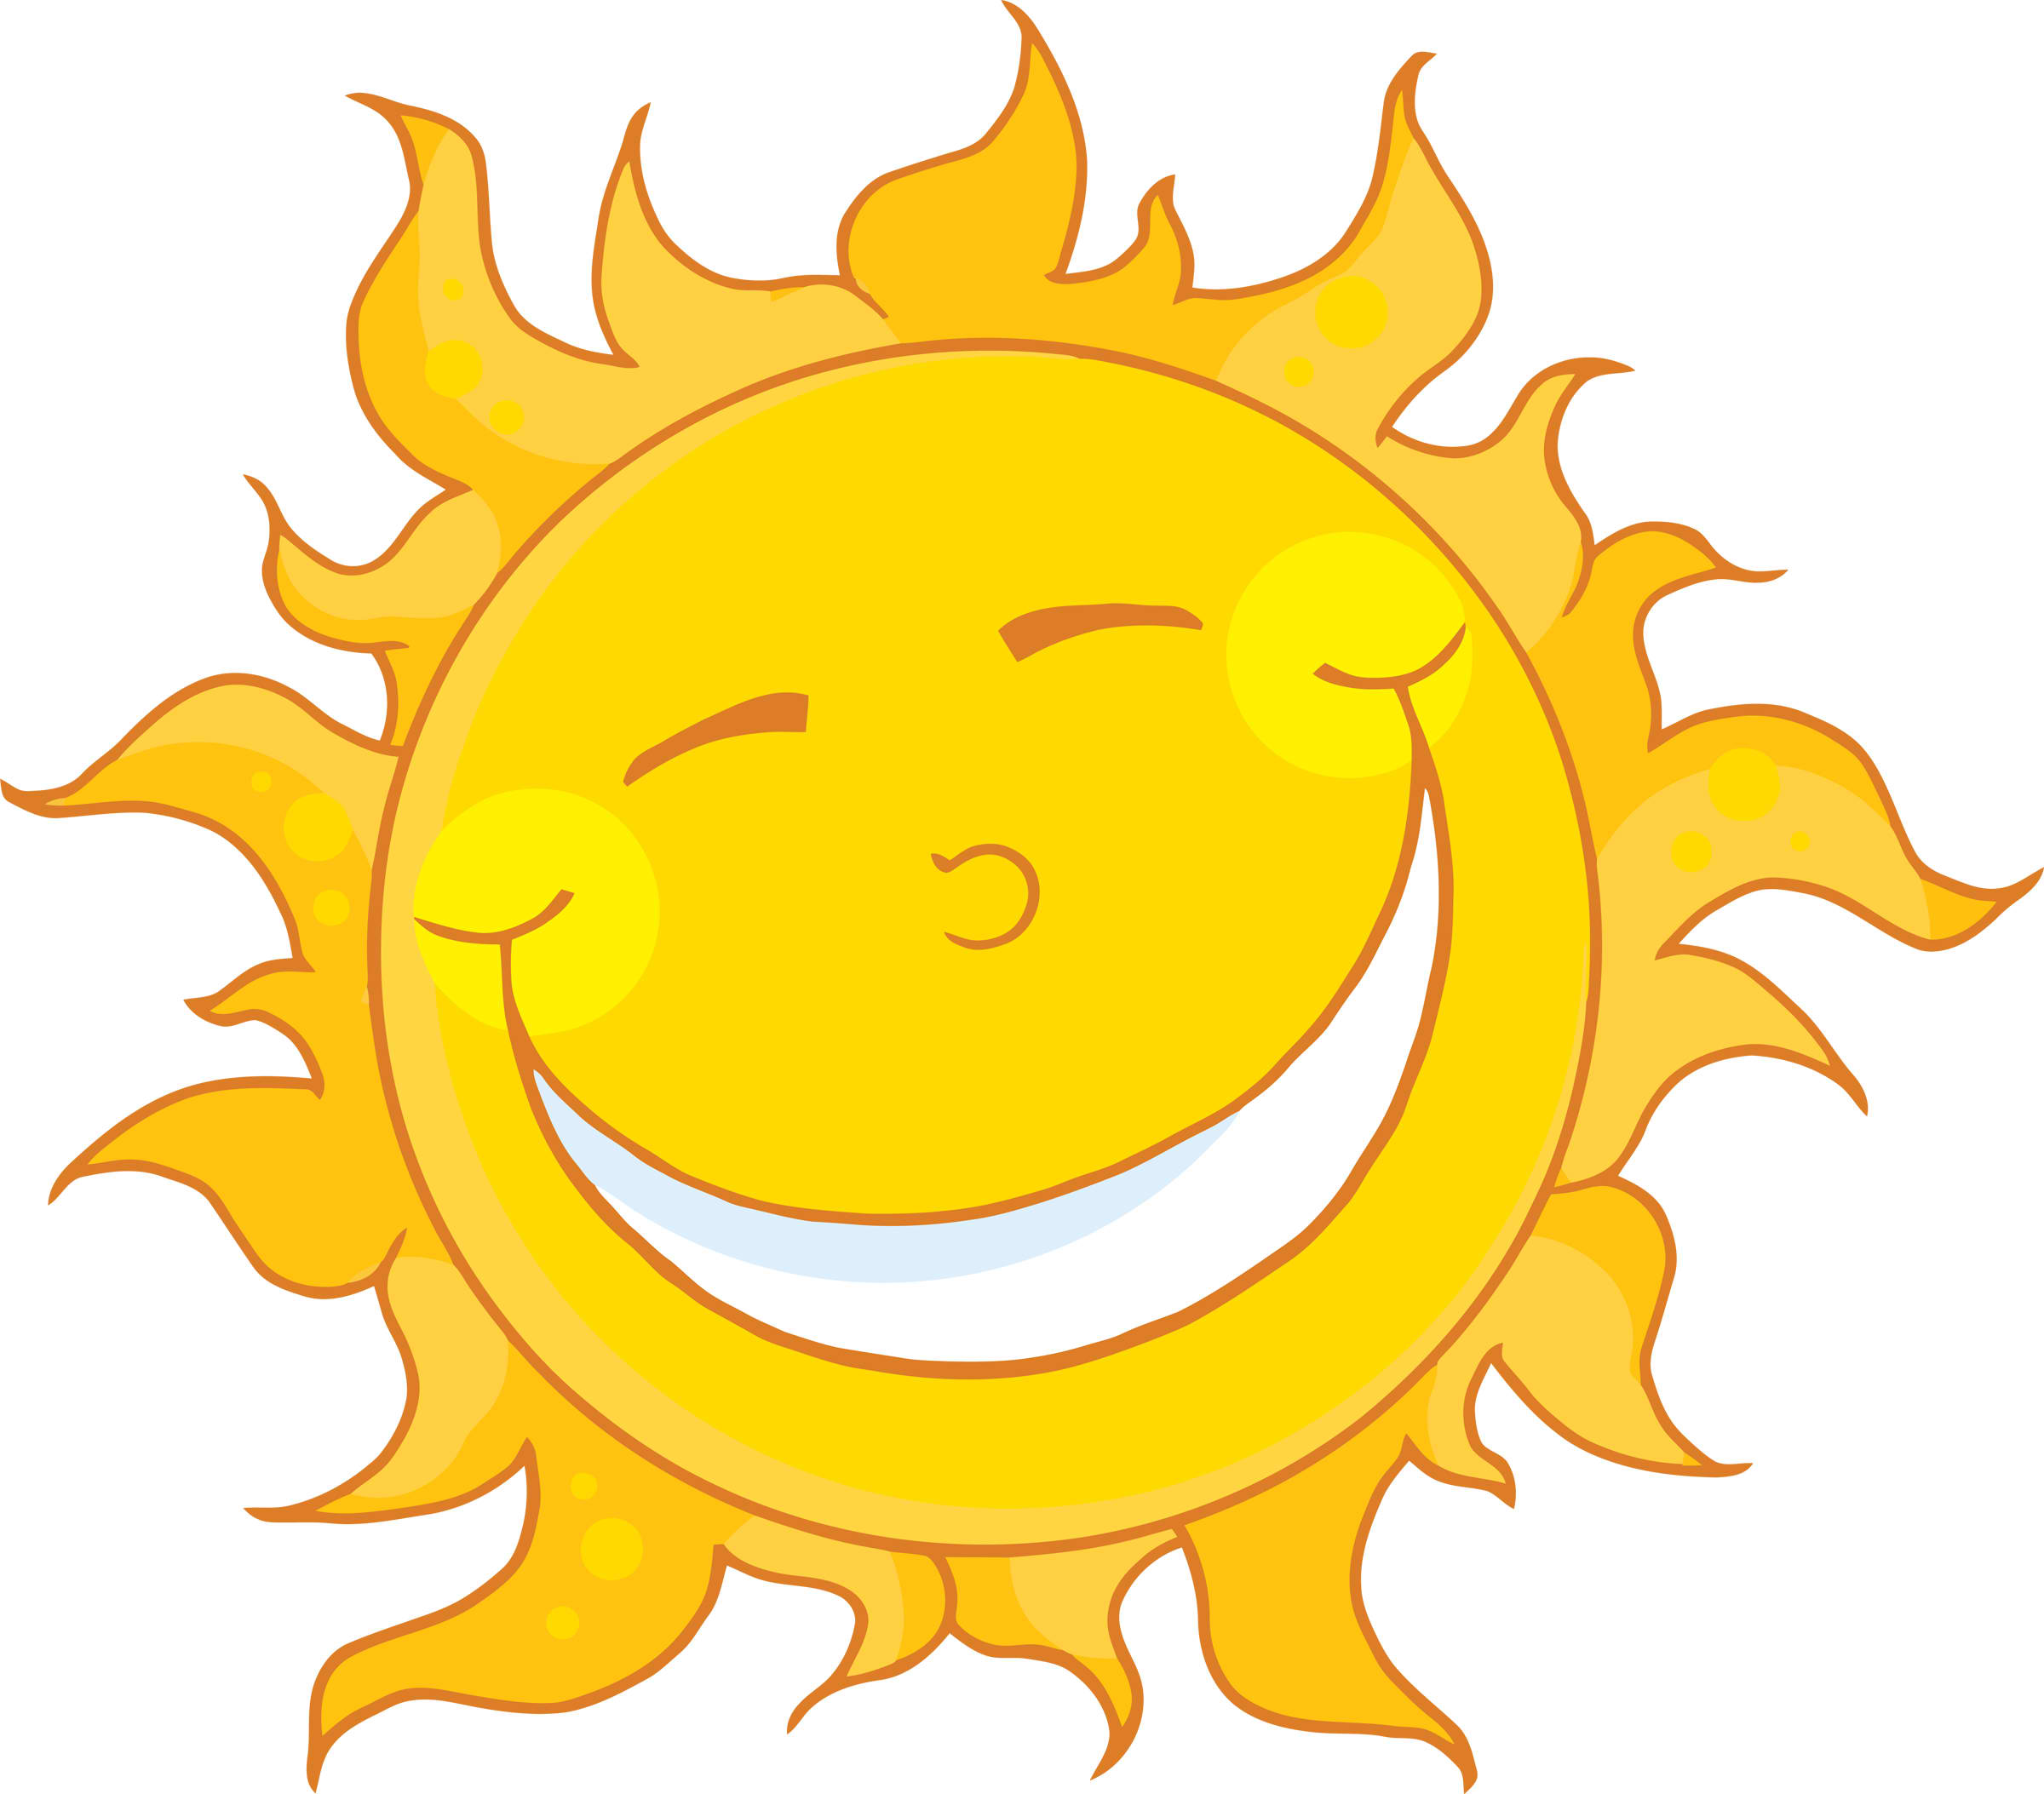 Happy Sun With Sunglasses Clipart Panda Free Clipart Images